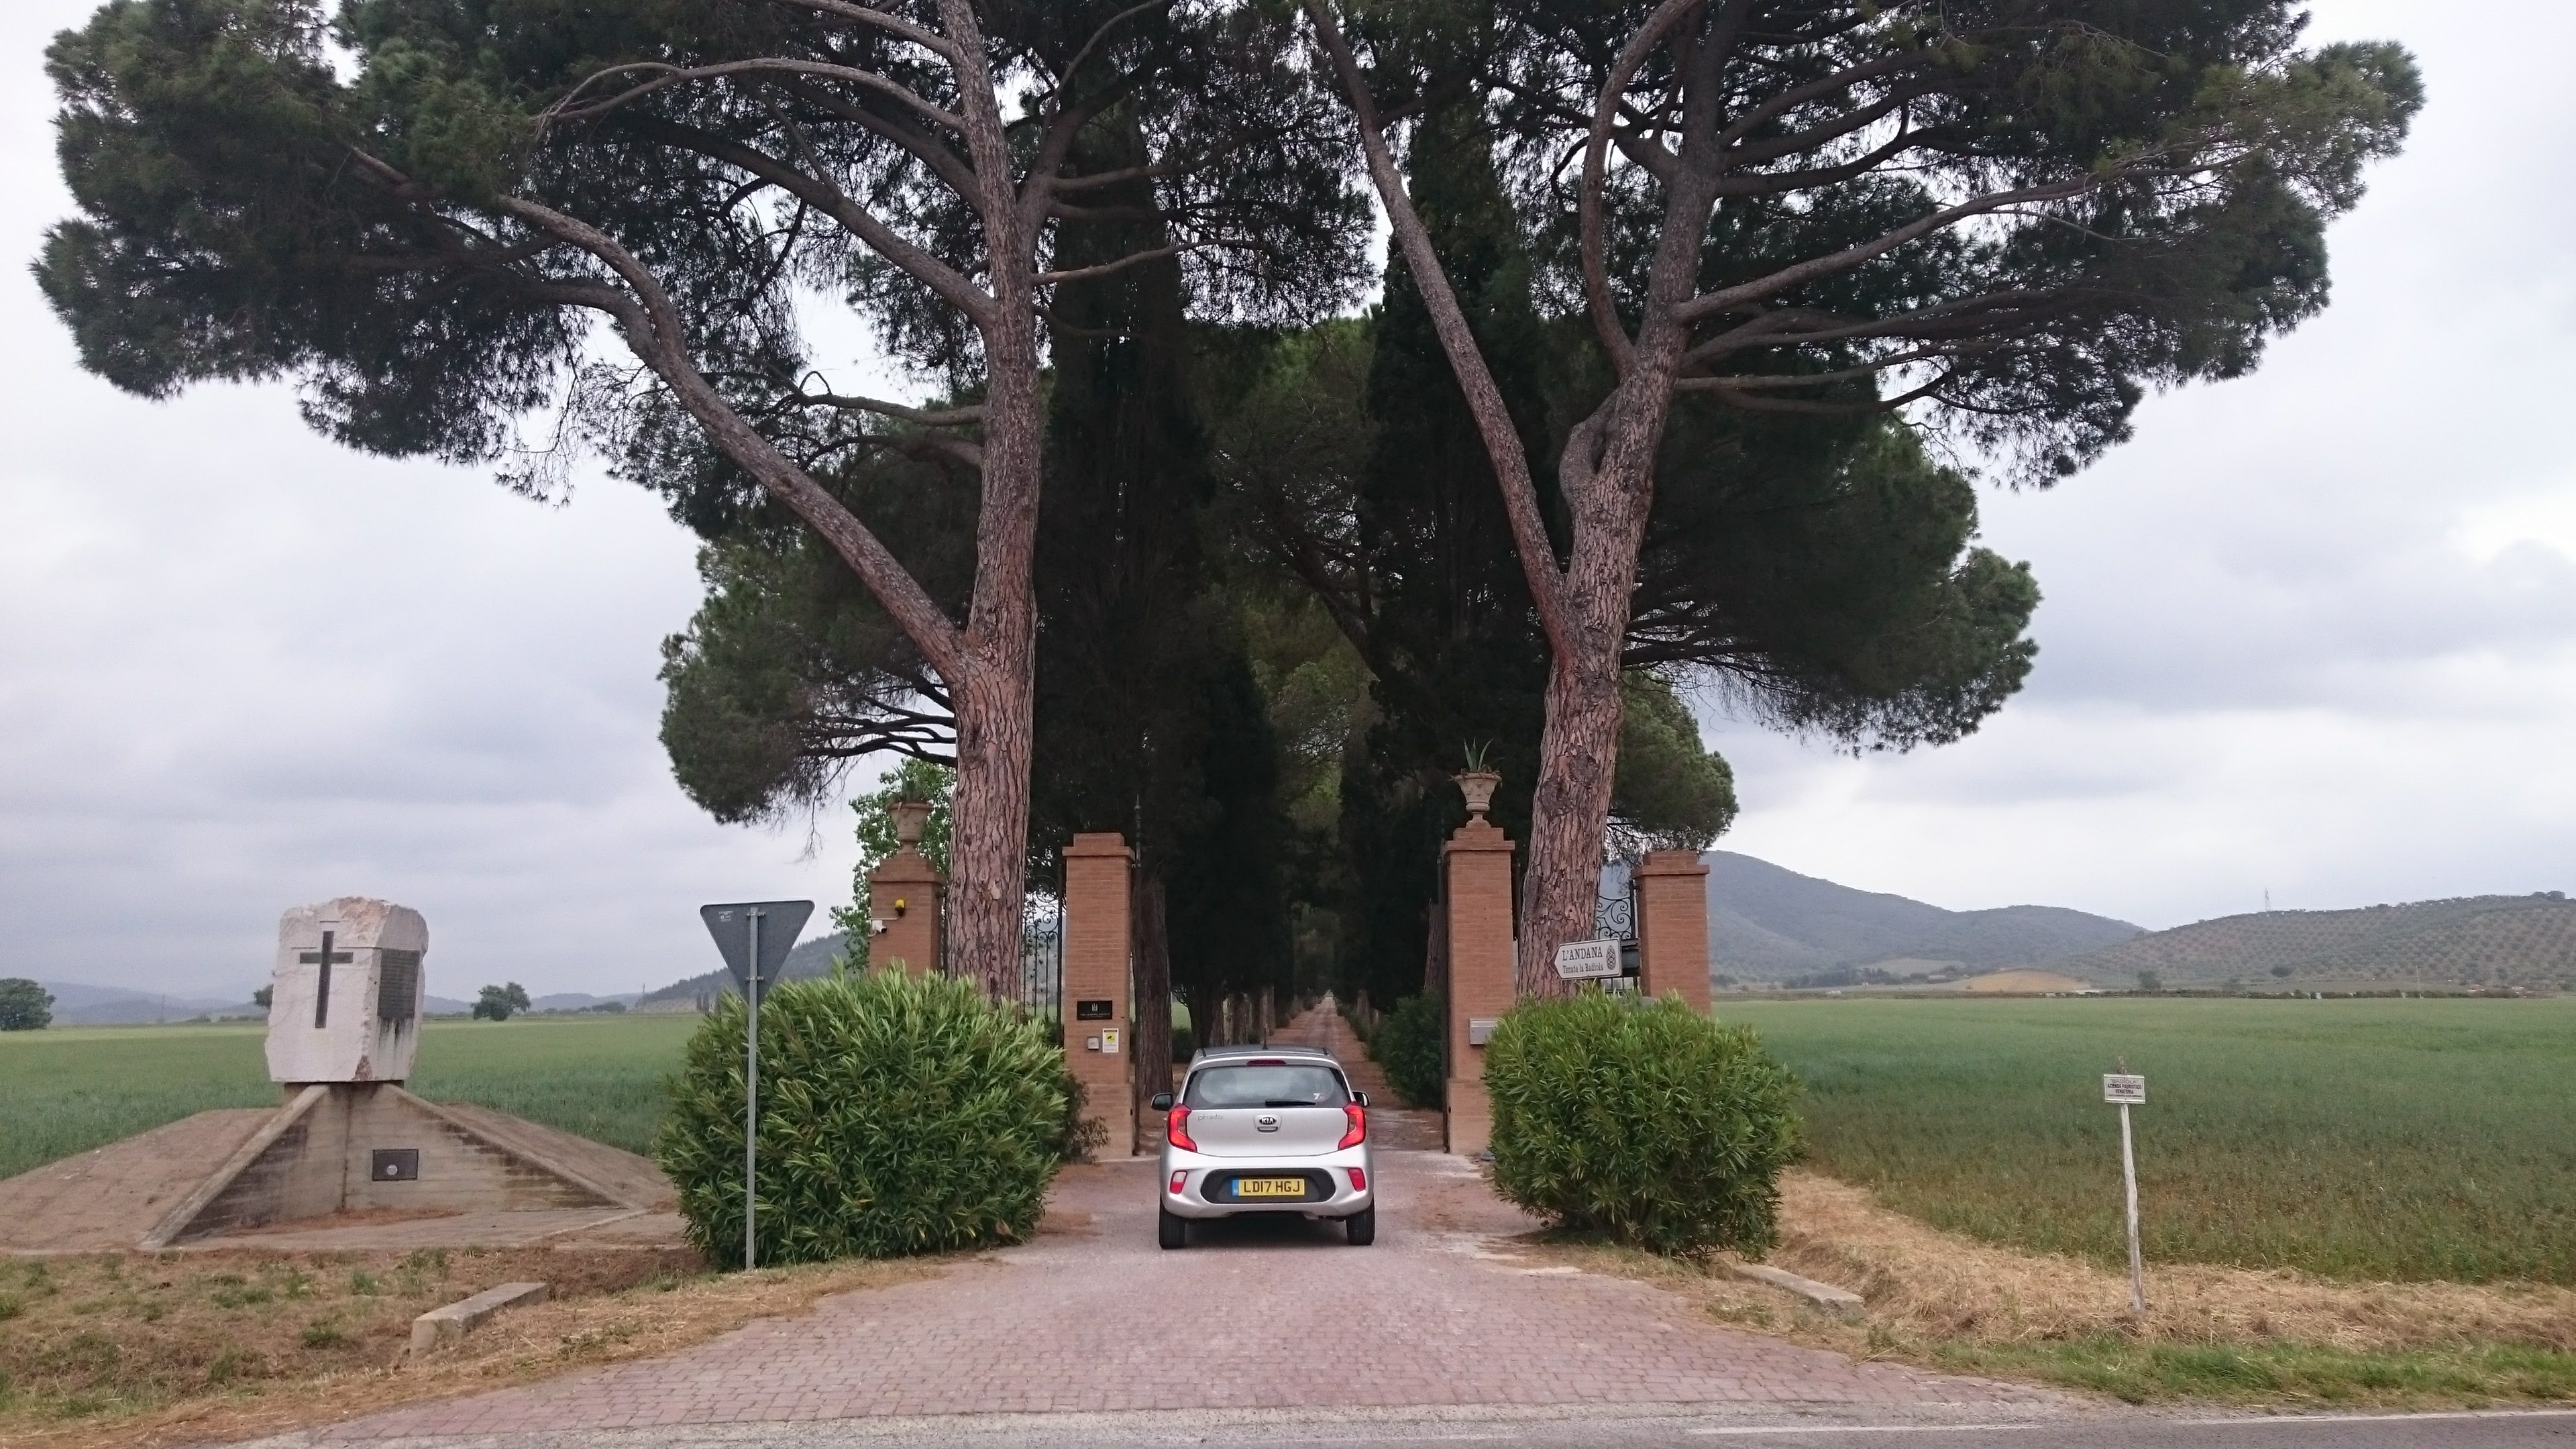 Driving the Kia Picanto in Tuscany